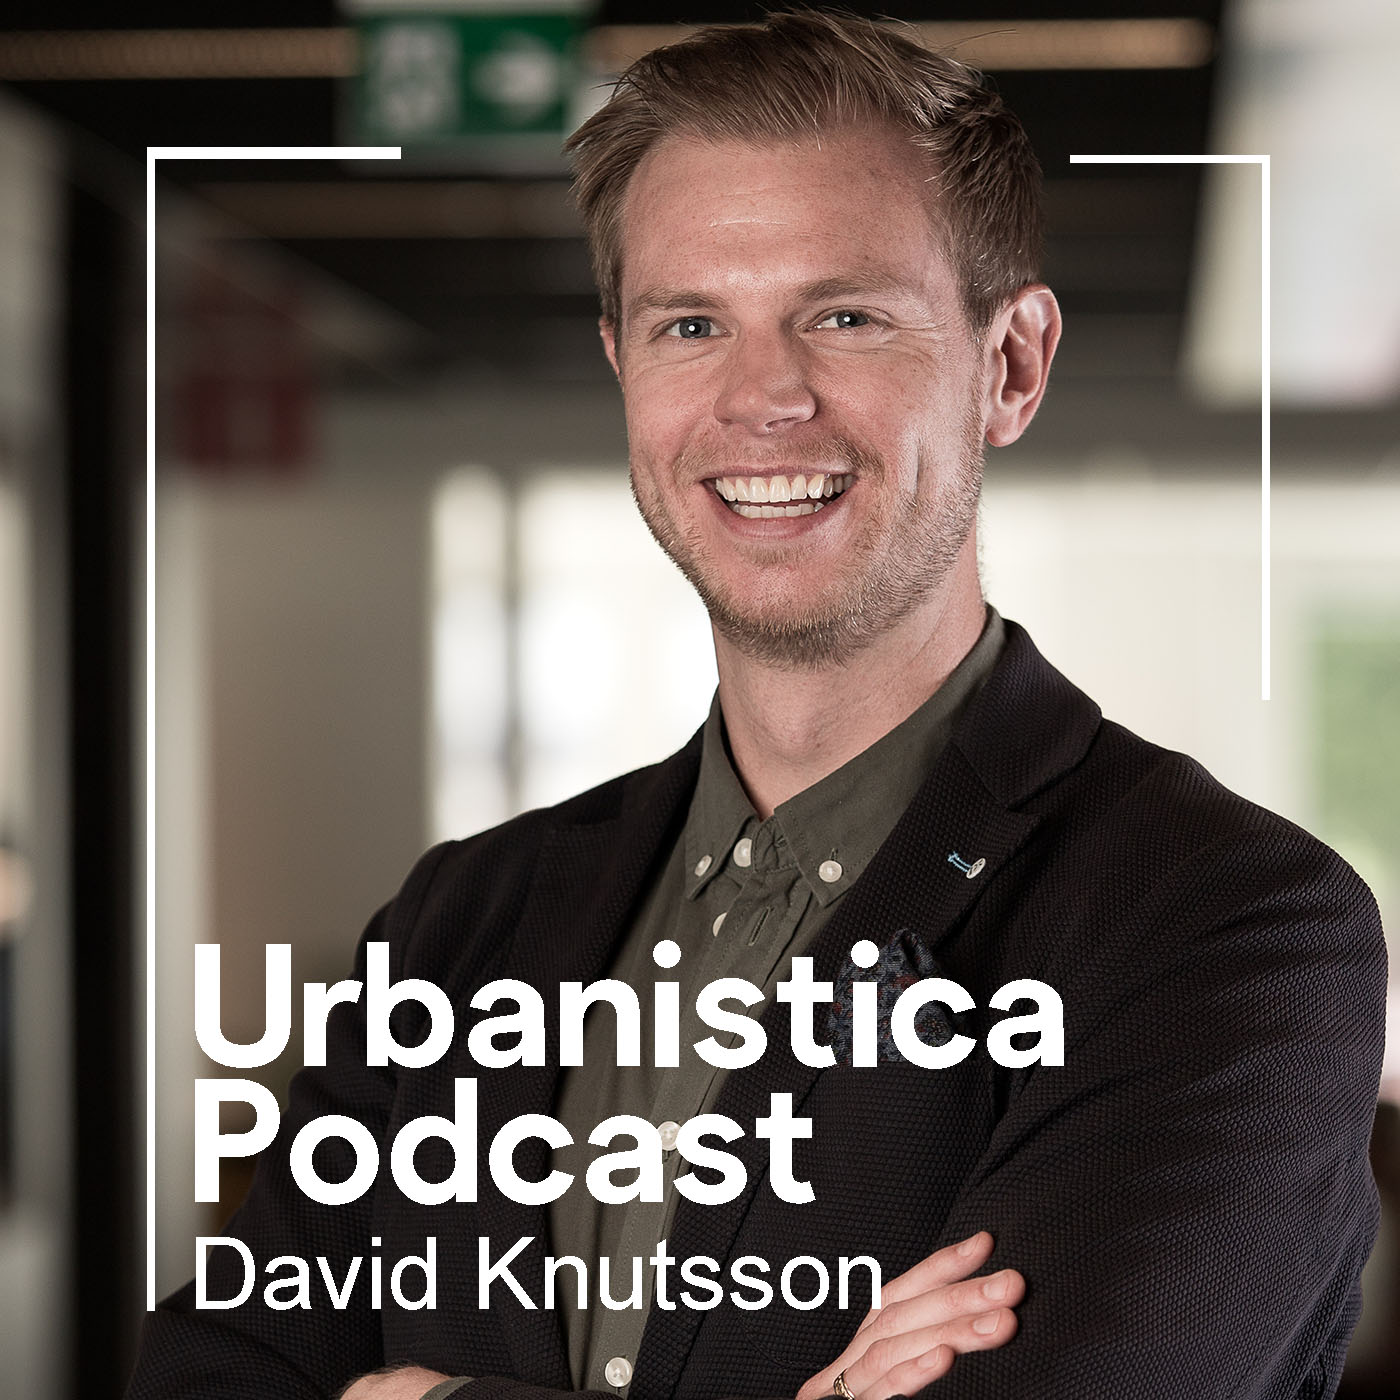 E6. EN. Coworking spaces and communities - David Knutsson